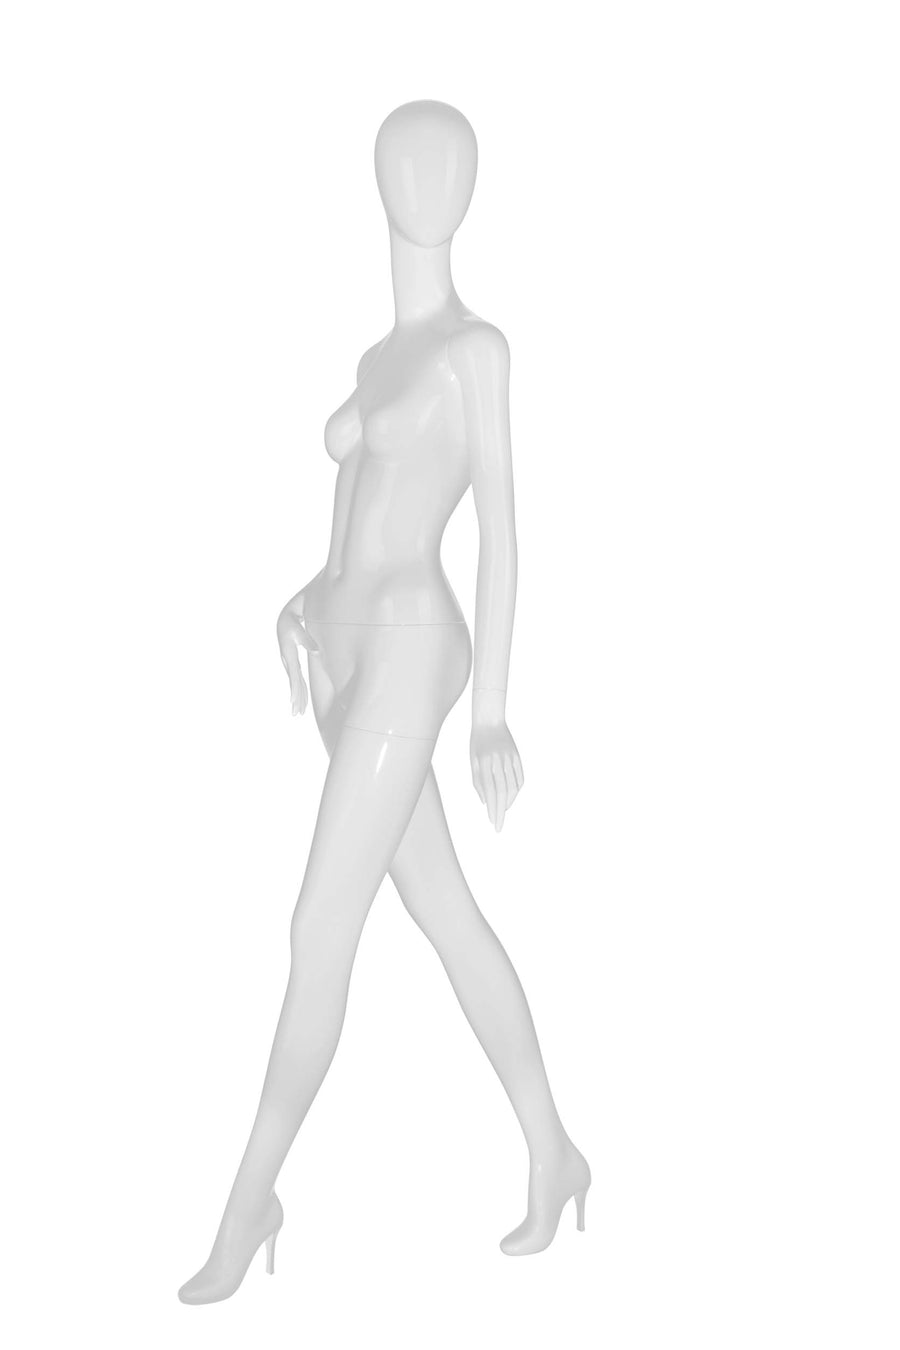 pure white female mannequin with blank face, arms at sides, head looking left, and left leg stepping forward